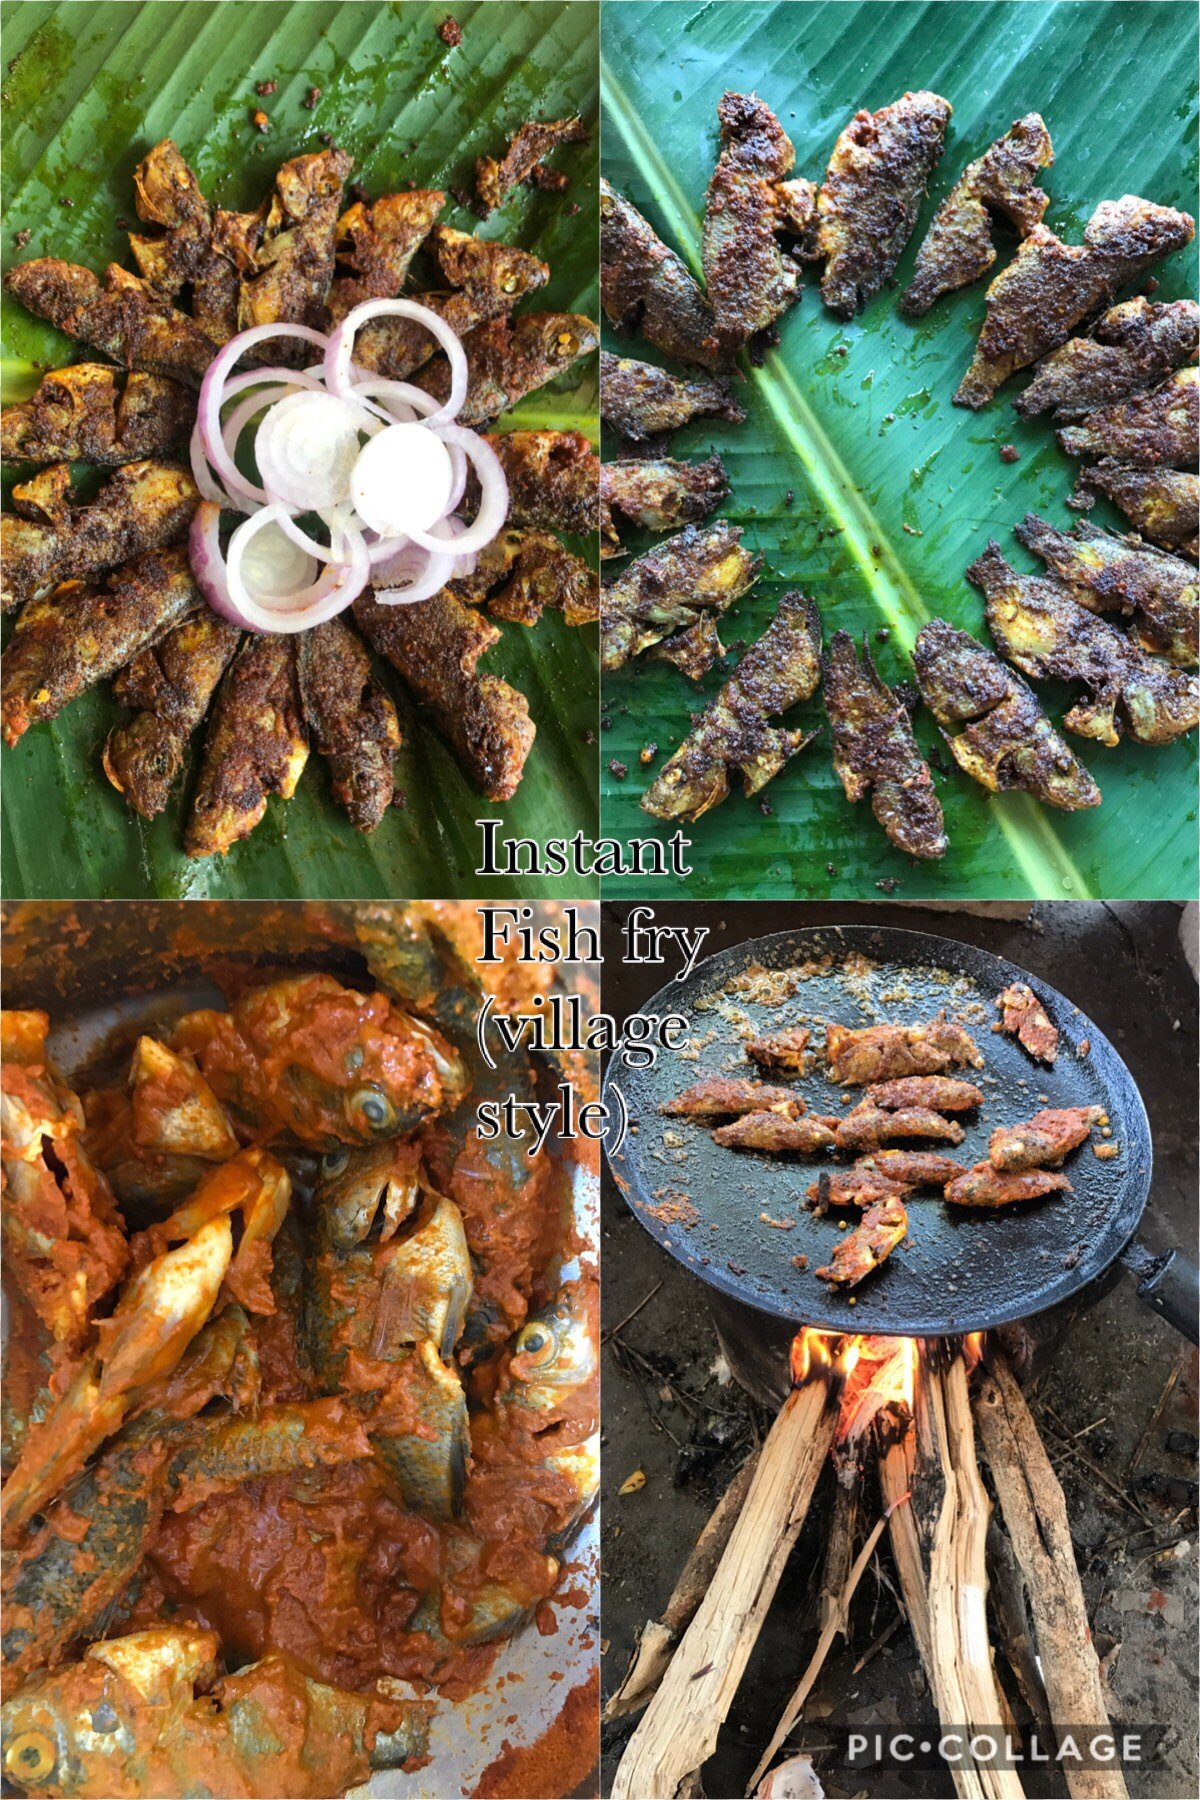 Instant Fish Fry(village style )